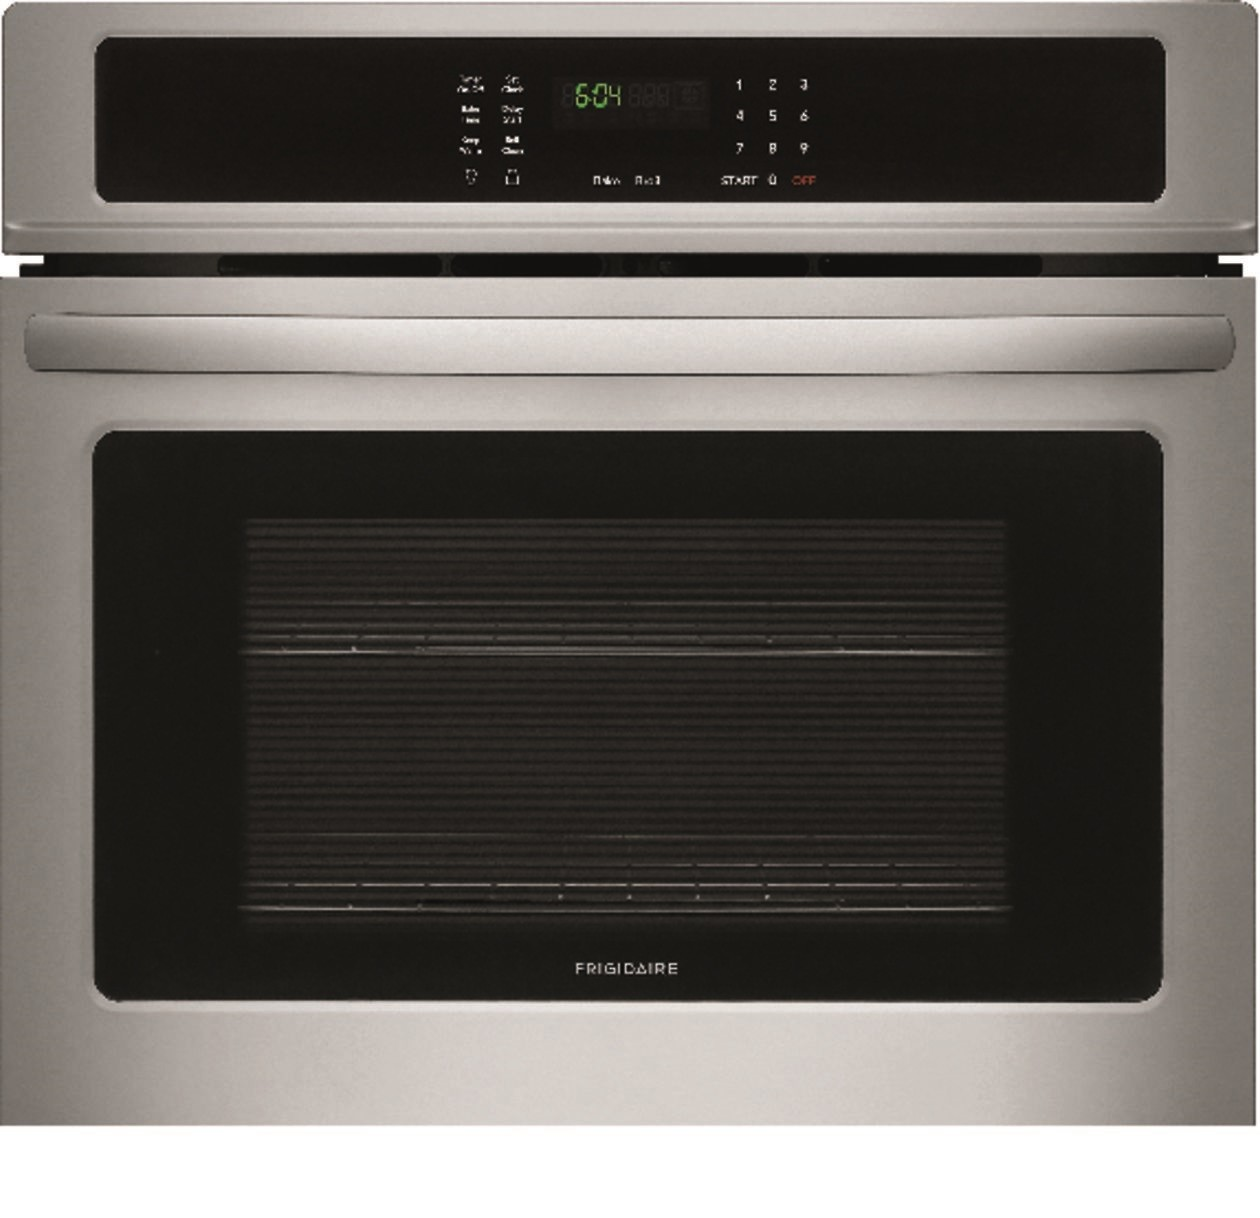 Total Capacity Electric Single Wall Oven ft Sharp SWA3052DS 30 Inch 5 cu